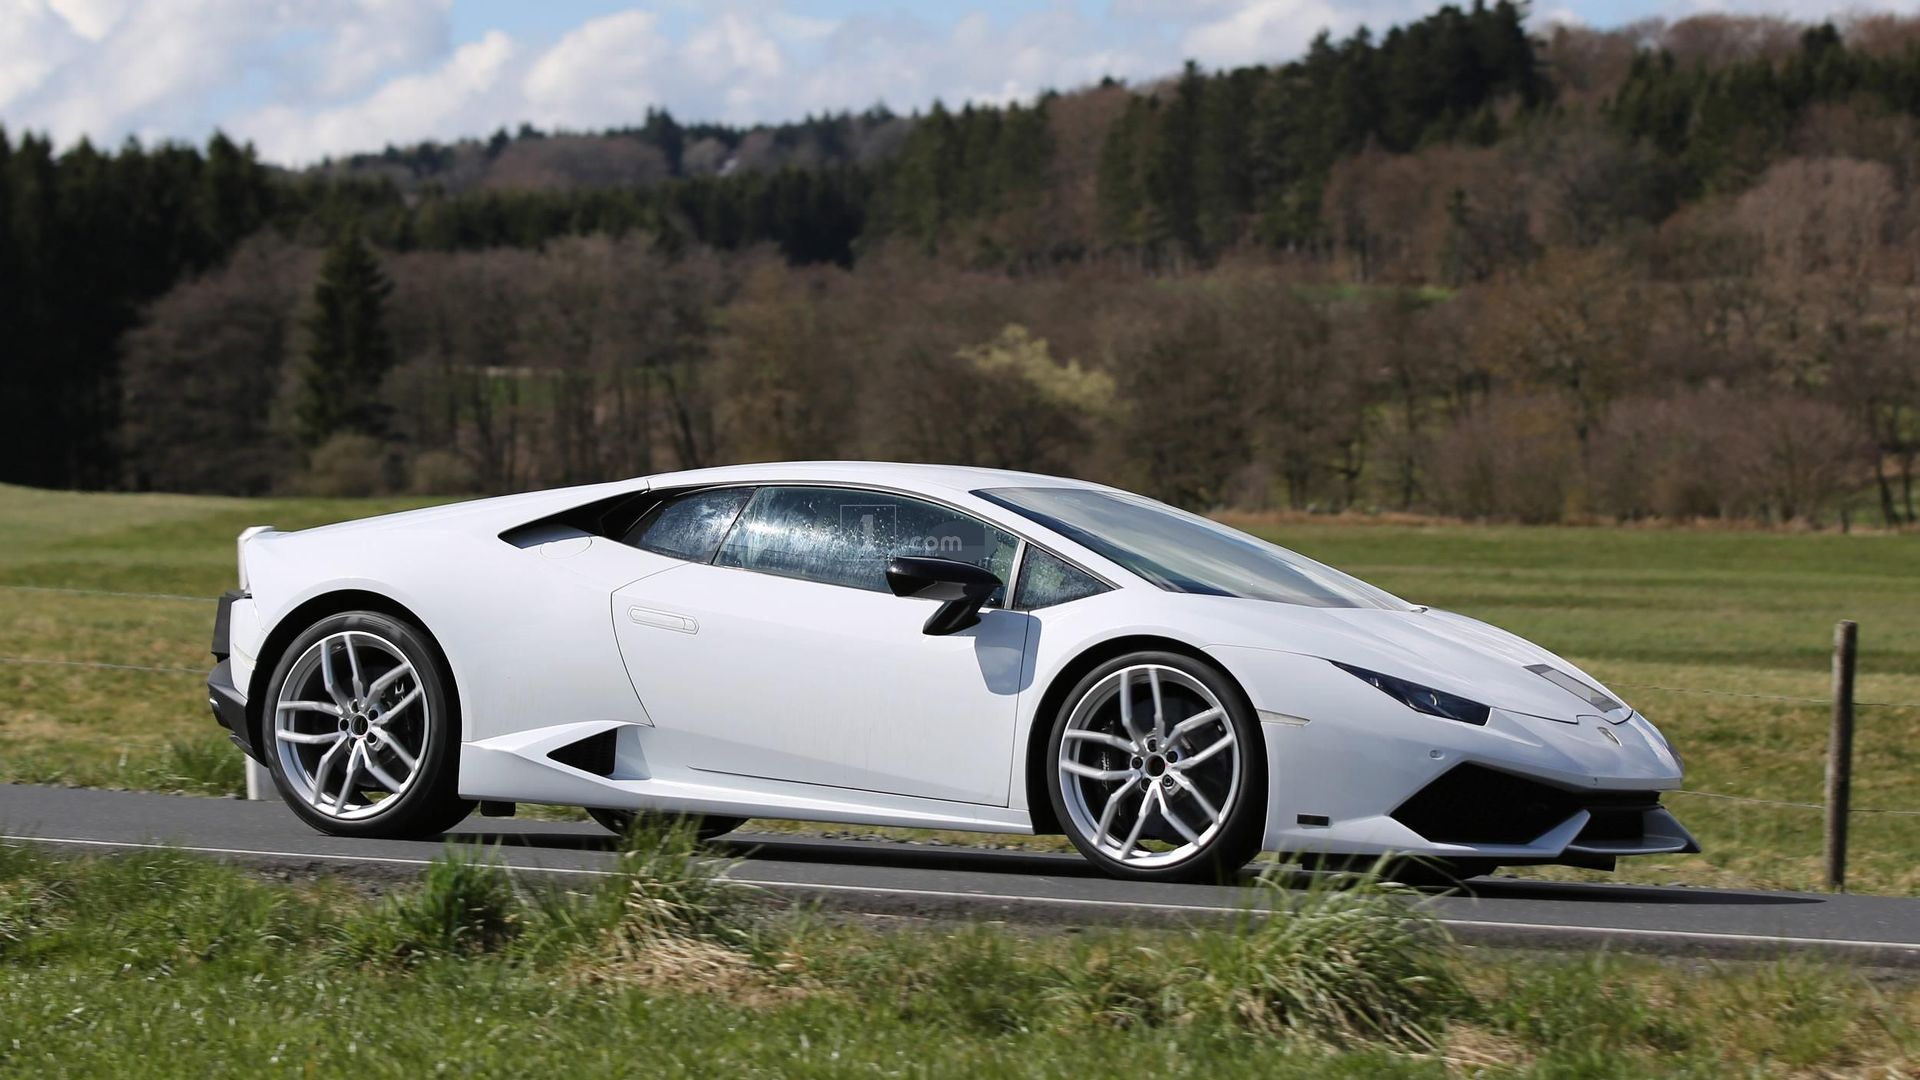 lamborghini huracan superleggera mule has six exhaust tips. Black Bedroom Furniture Sets. Home Design Ideas